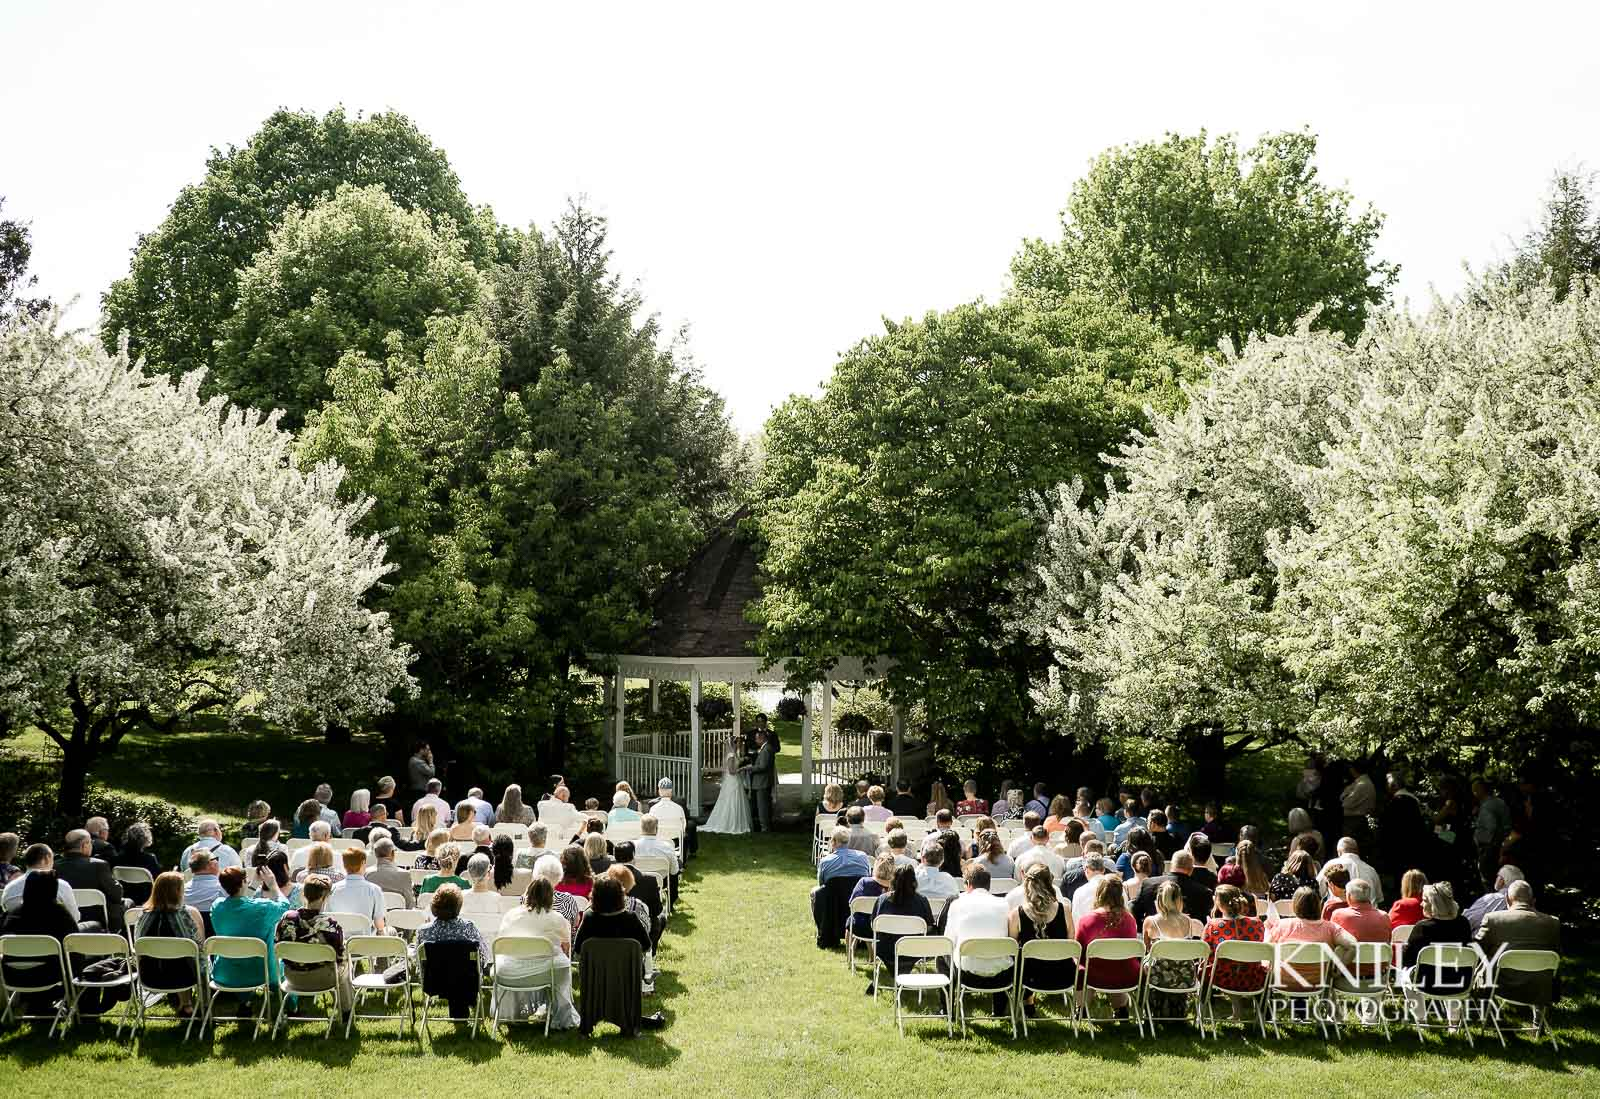 27-Plantation-Party-House-springtime-wedding-Rochester-NY-Kniley-Photography.jpg